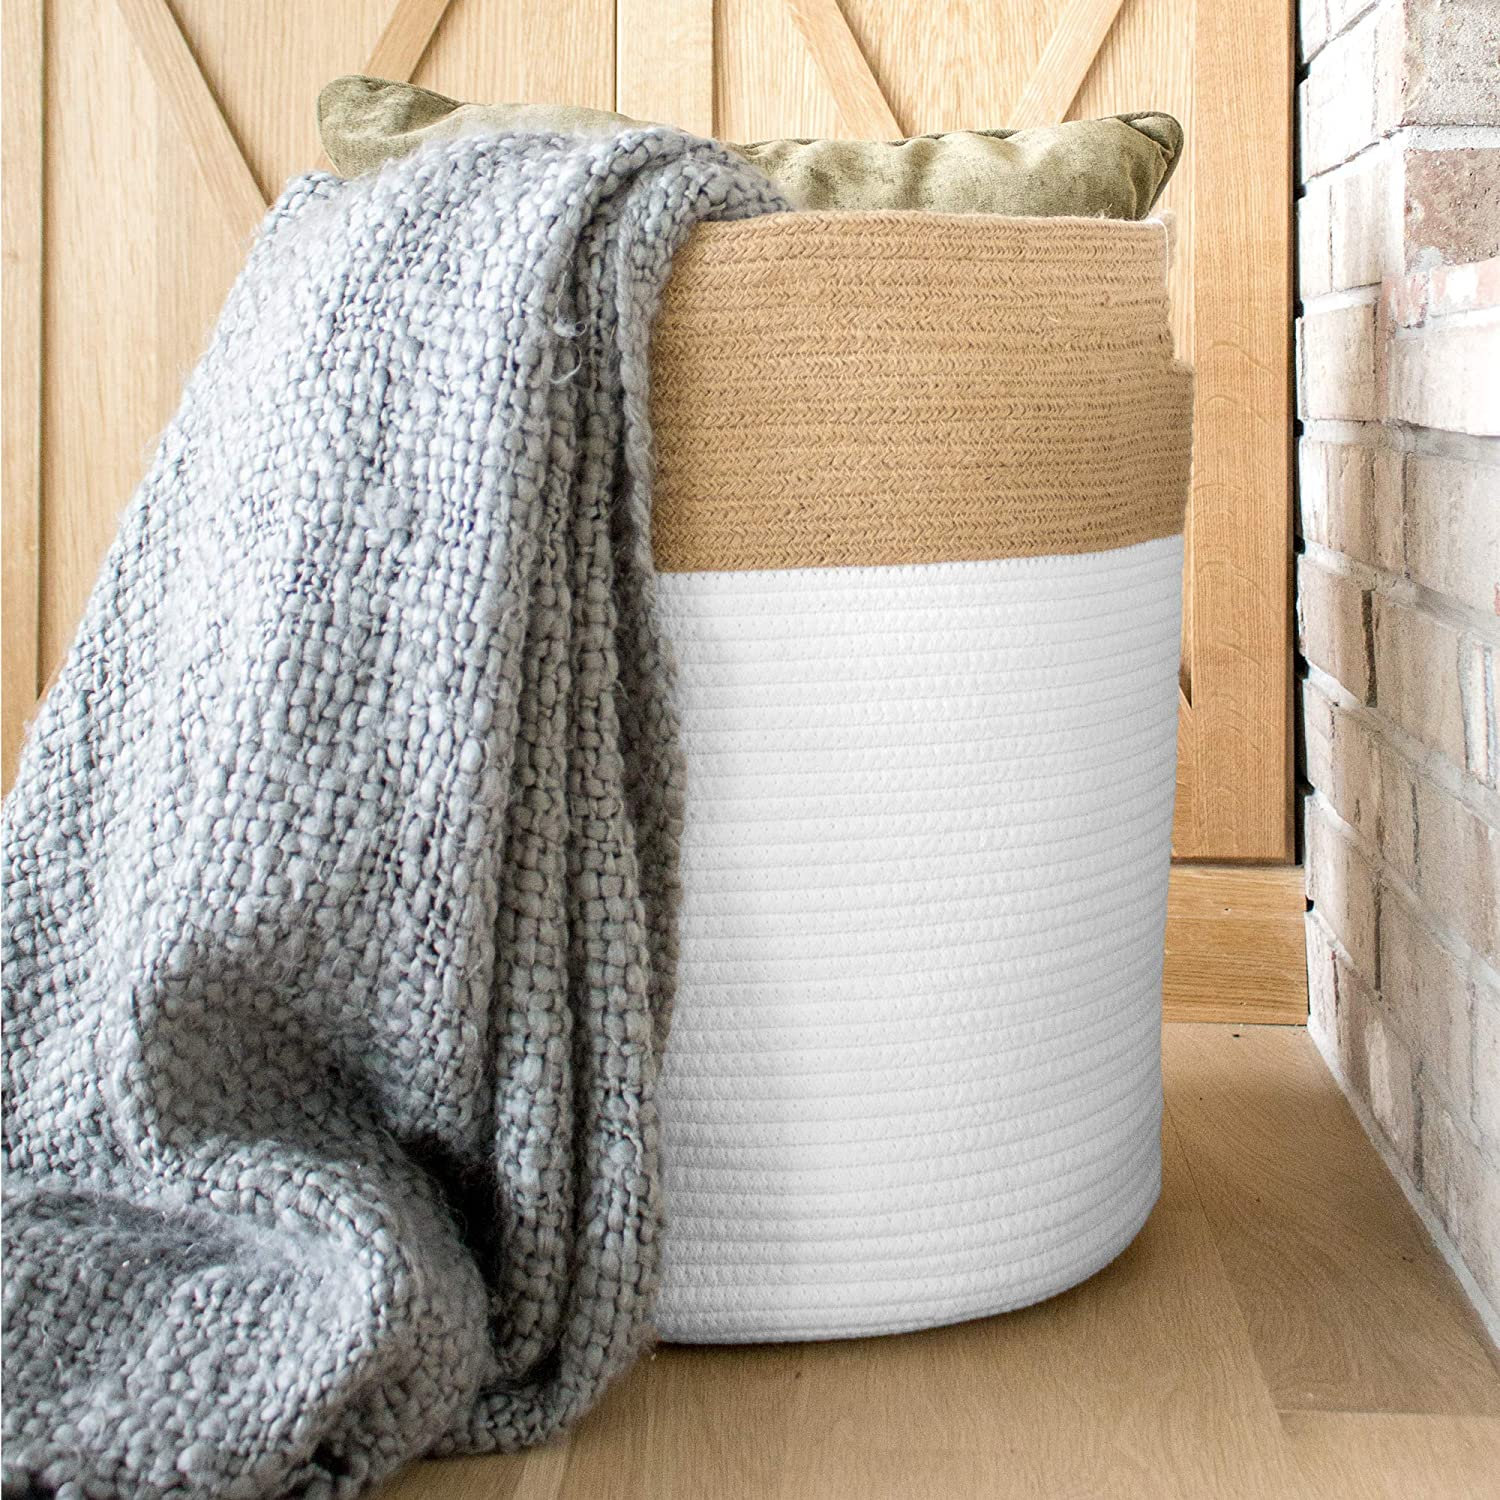 Shop Chloe and Cotton Extra Large Tall Woven Rope Storage Basket from Amazon on Openhaus